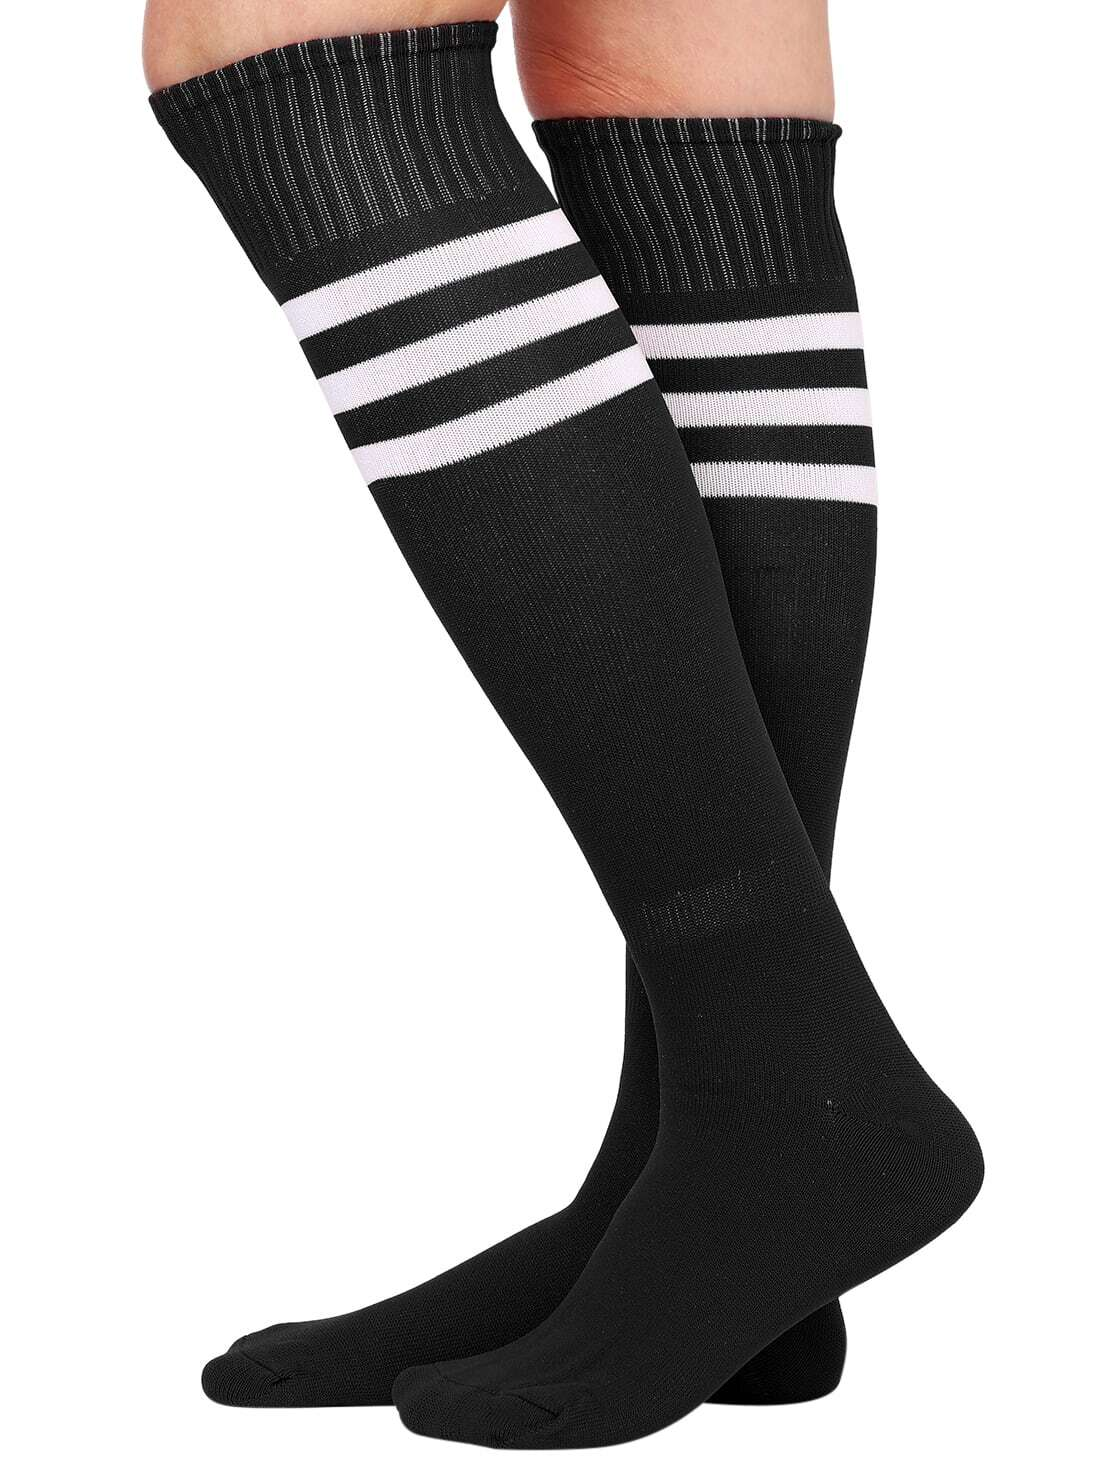 Black Tube Socks With Shoes